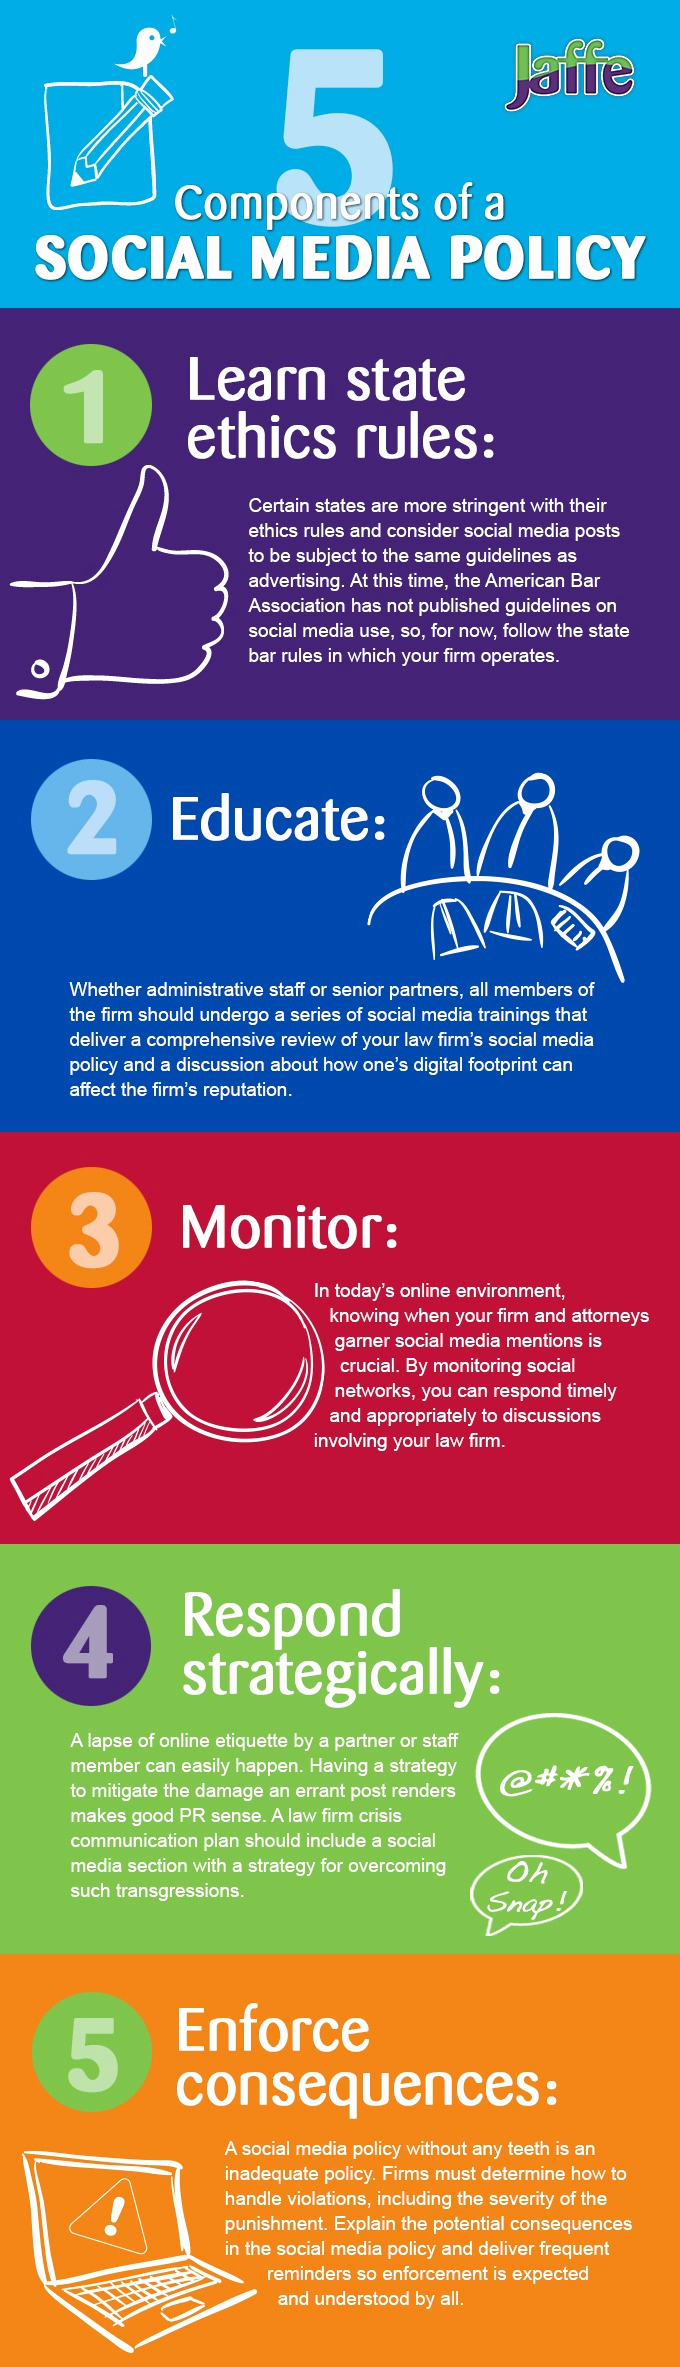 Social Media Policy Template Best Of social Media Policy Template